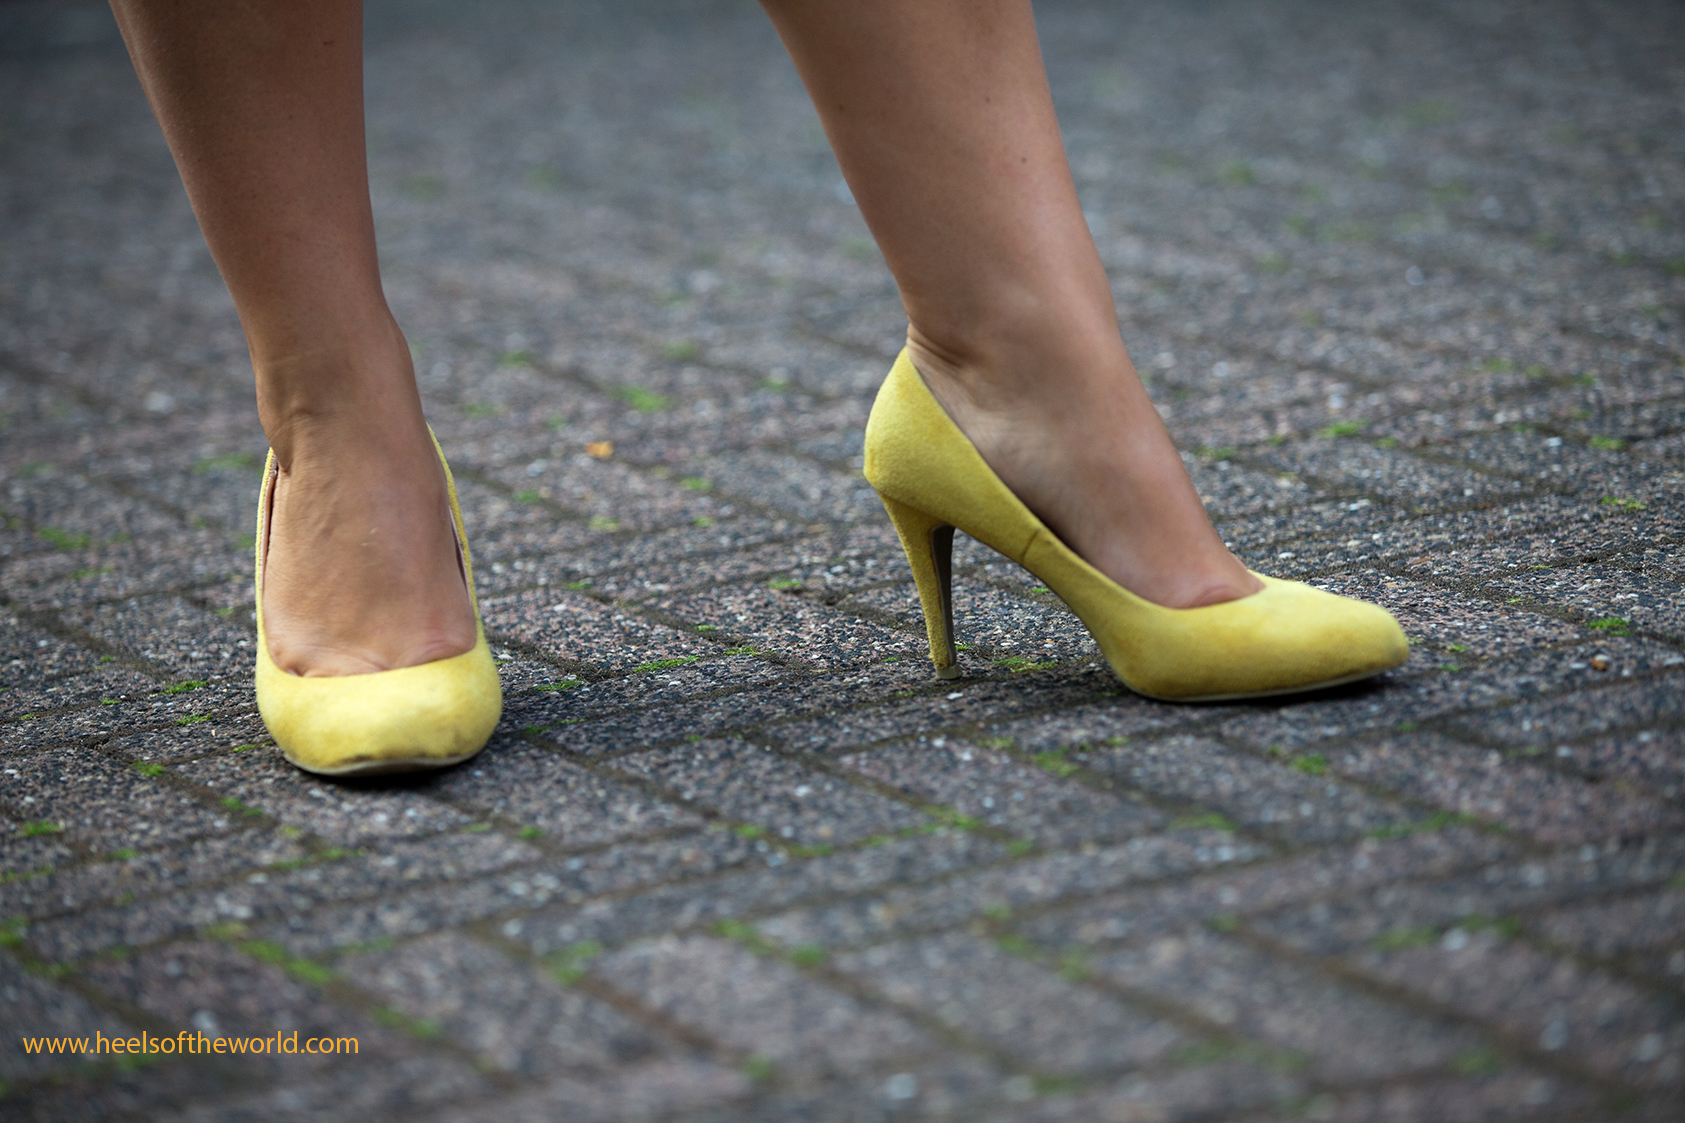 Serie special heels for shoesoftheworld by Etienne Oldeman Photography. Dutchs shoes and heels all over theworld.